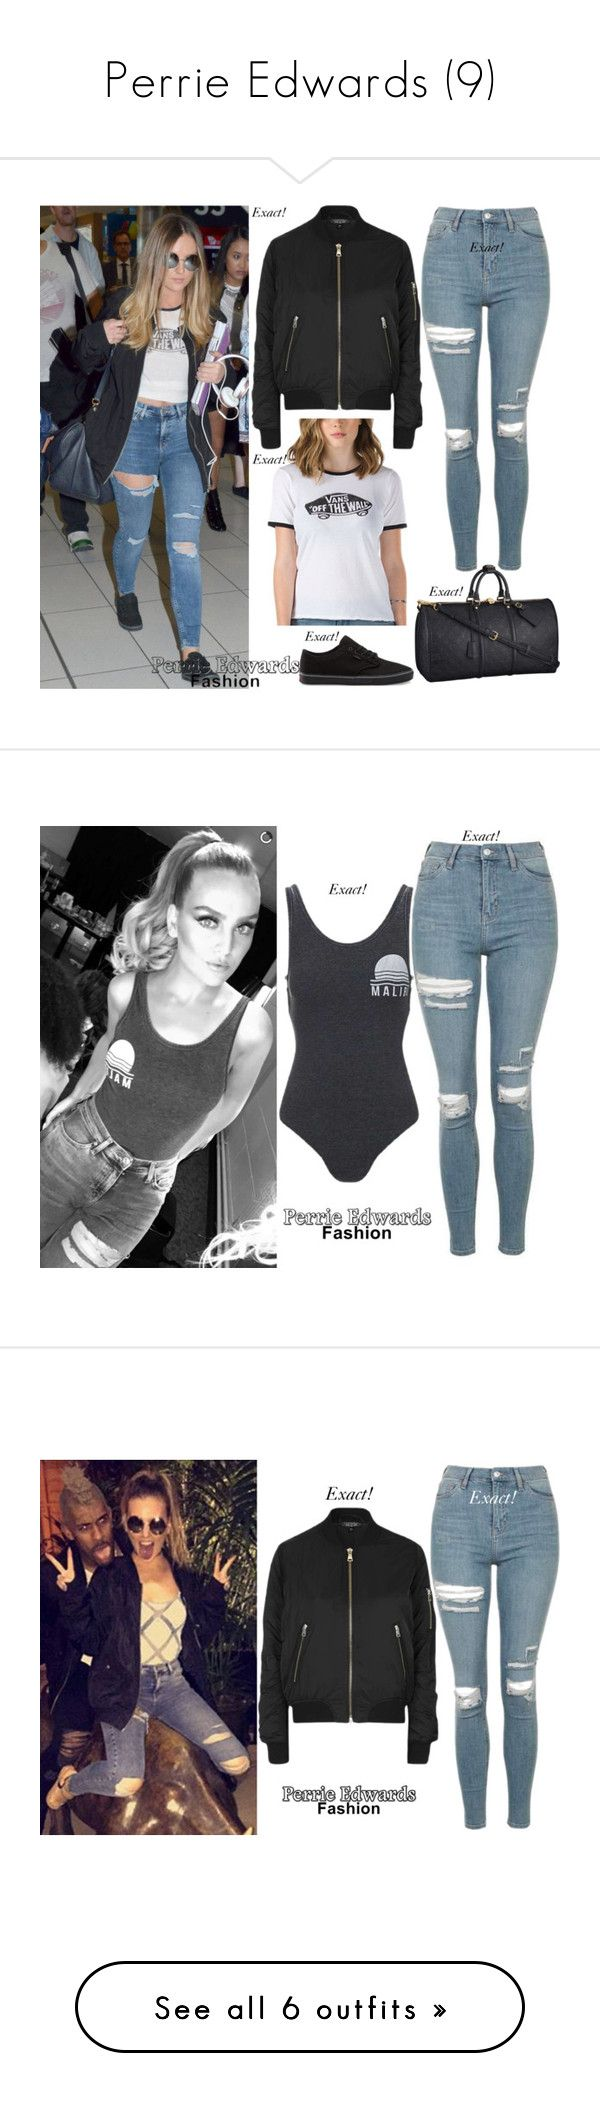 """""""Perrie Edwards (9)"""" by the-girl-in-the-hallway ❤ liked on Polyvore featuring Vans, Topshop, Louis Vuitton, RVCA, Chicnova Fashion, Decree, NLY Trend, Alexander McQueen, Bobbi Brown Cosmetics and Charlotte Russe"""